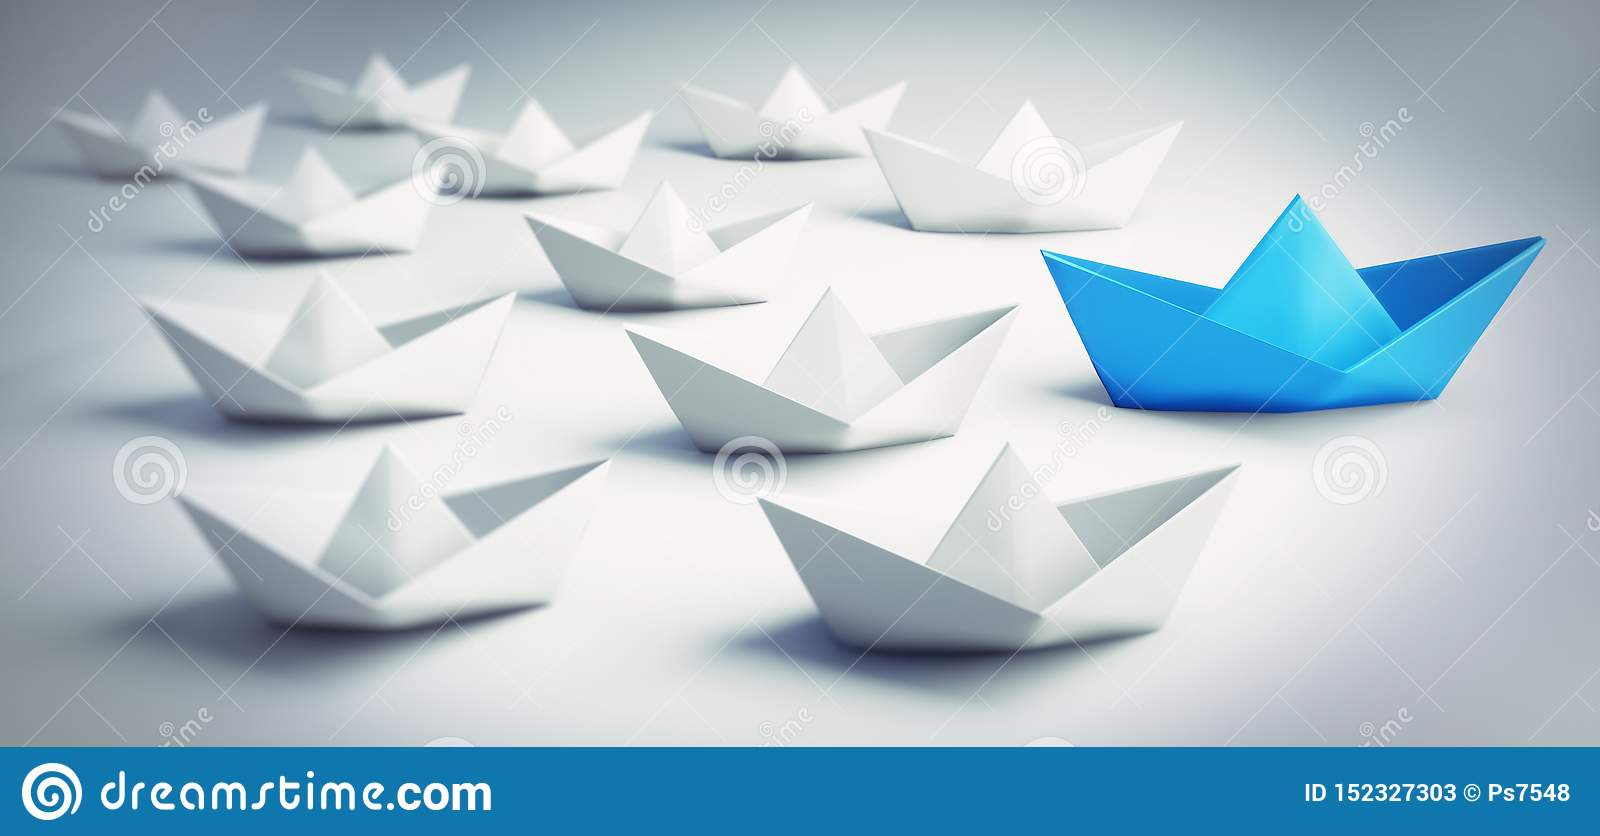 Group of white and blue paper boats - 3D illustration